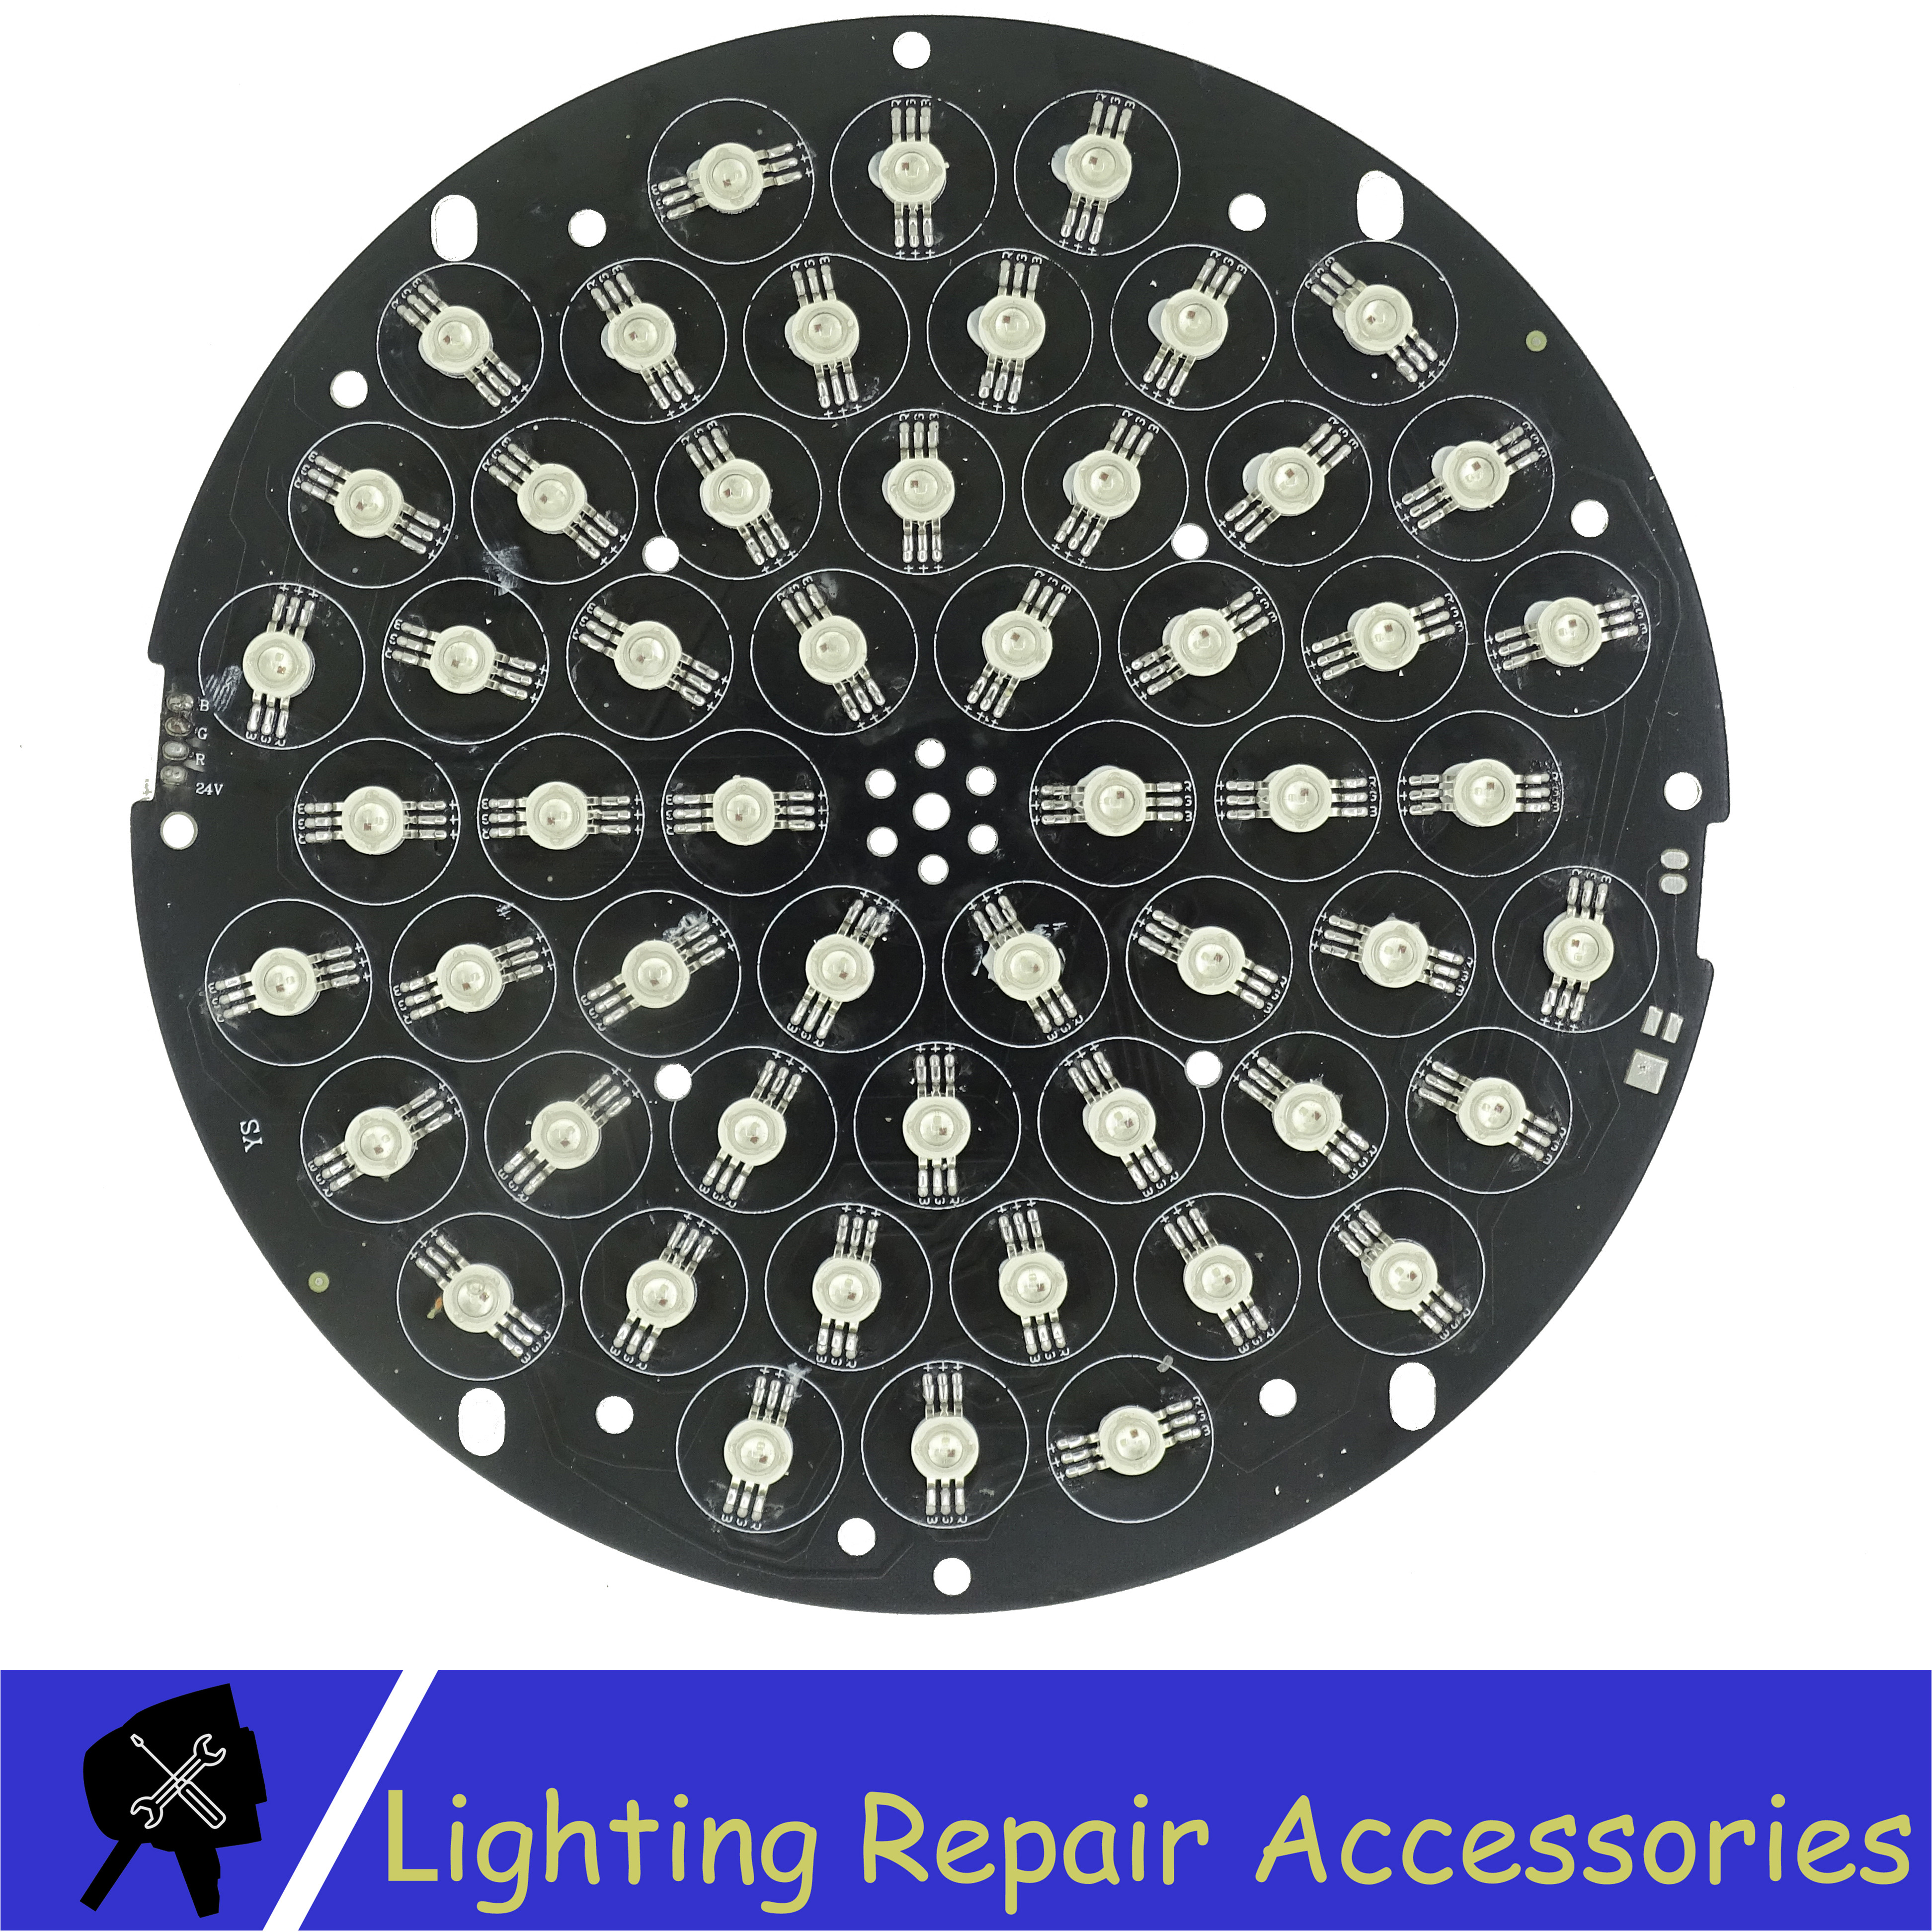 Led Lamp Bead For 54x3w RGB 3in1 Led Par Light Or 54x1w RGB 3in1 Par Light Stage Light Repair Accessories